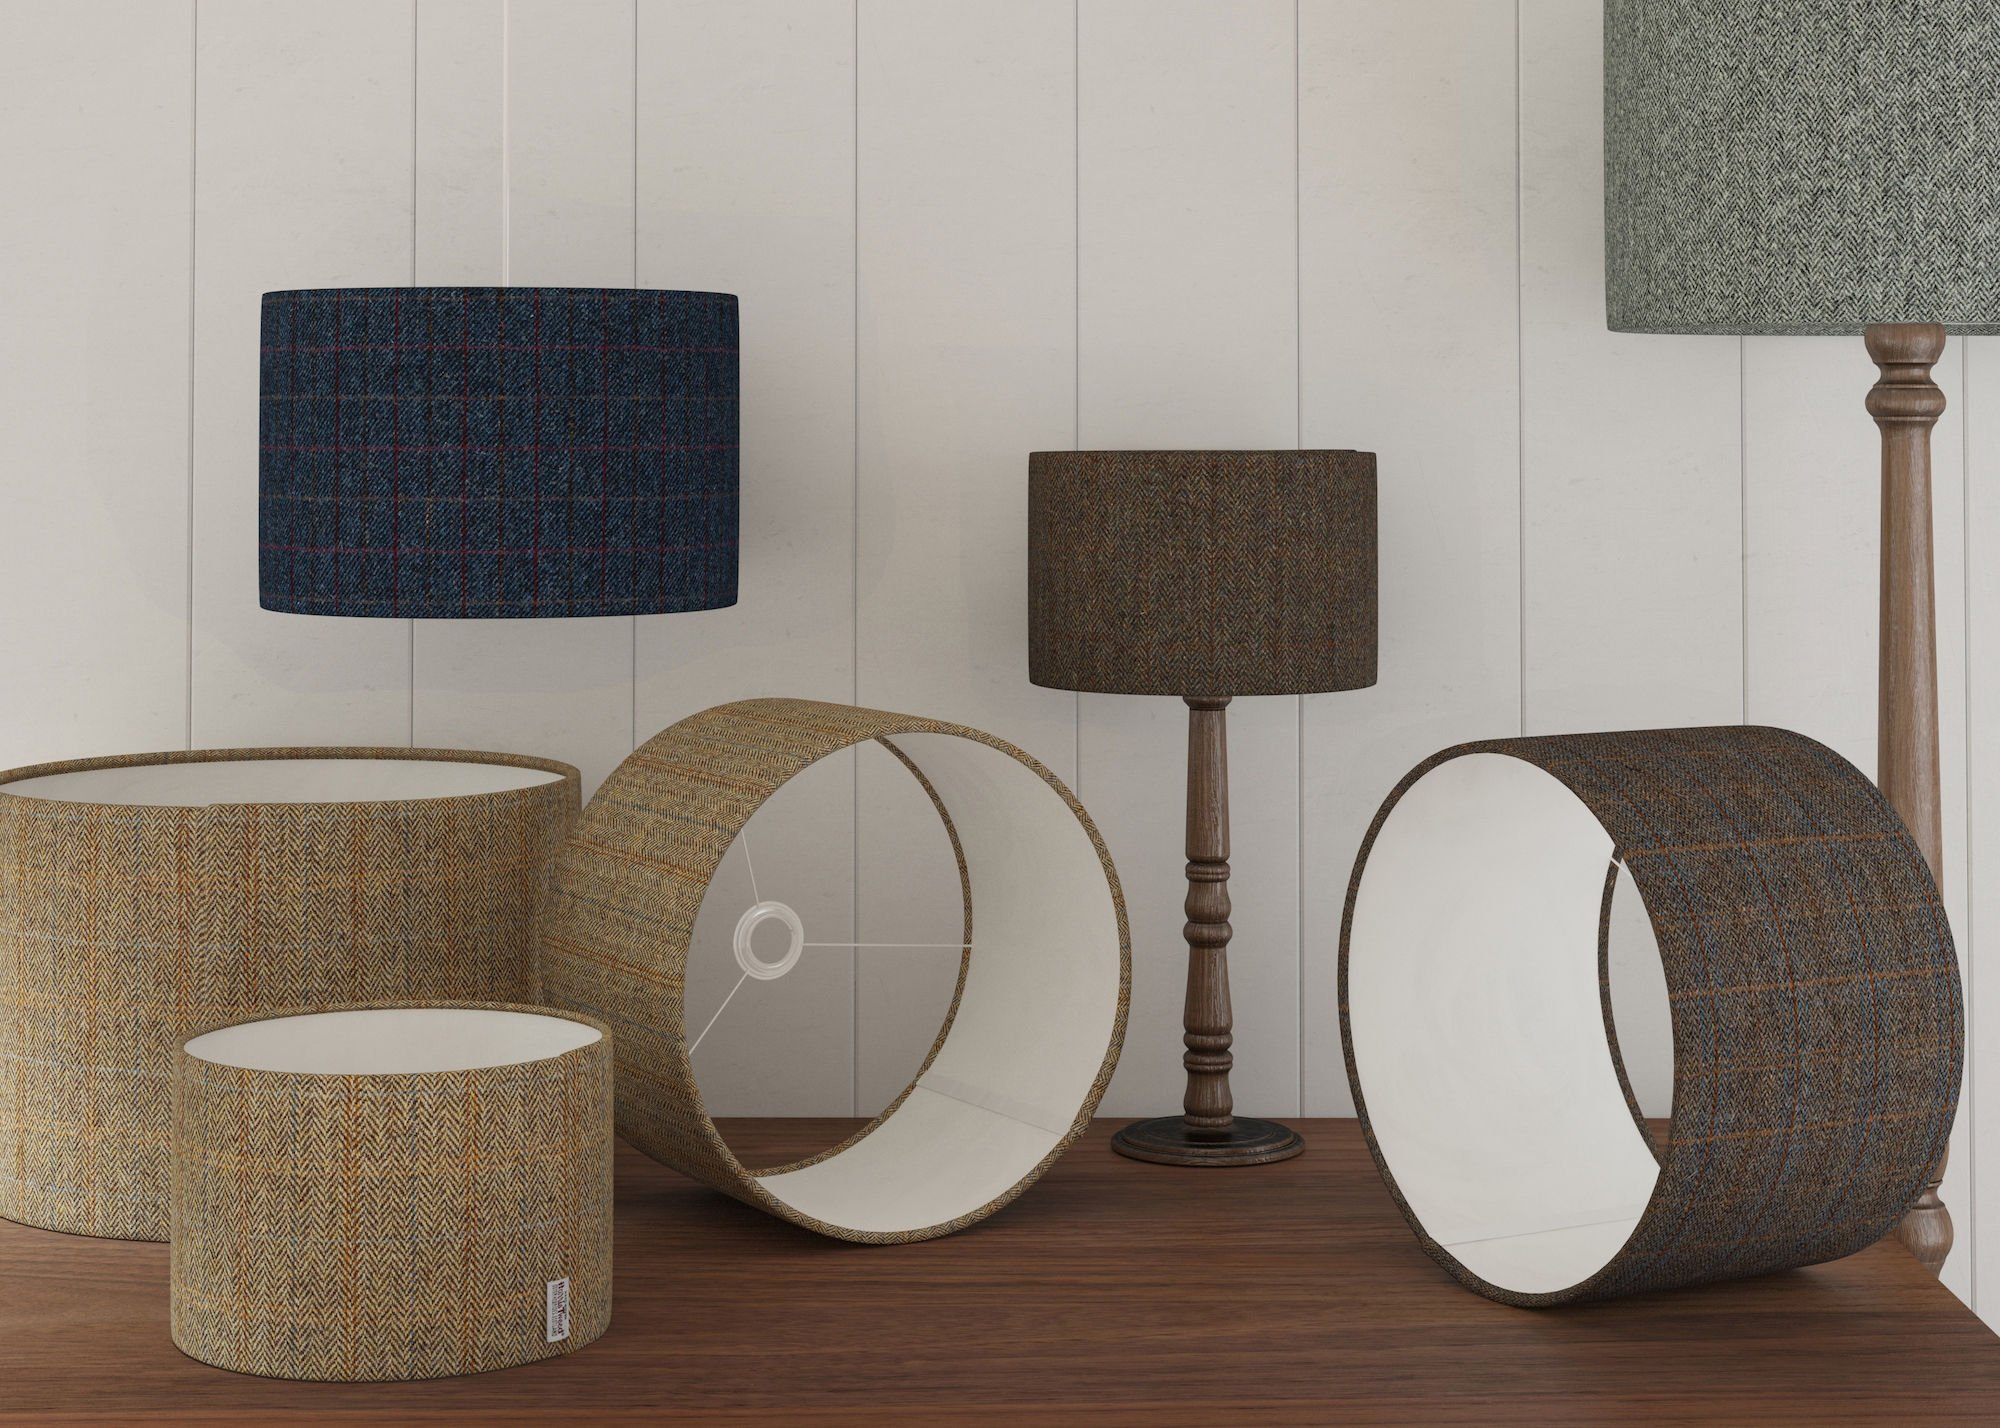 harris tweed lampshades, harris tweed shades,